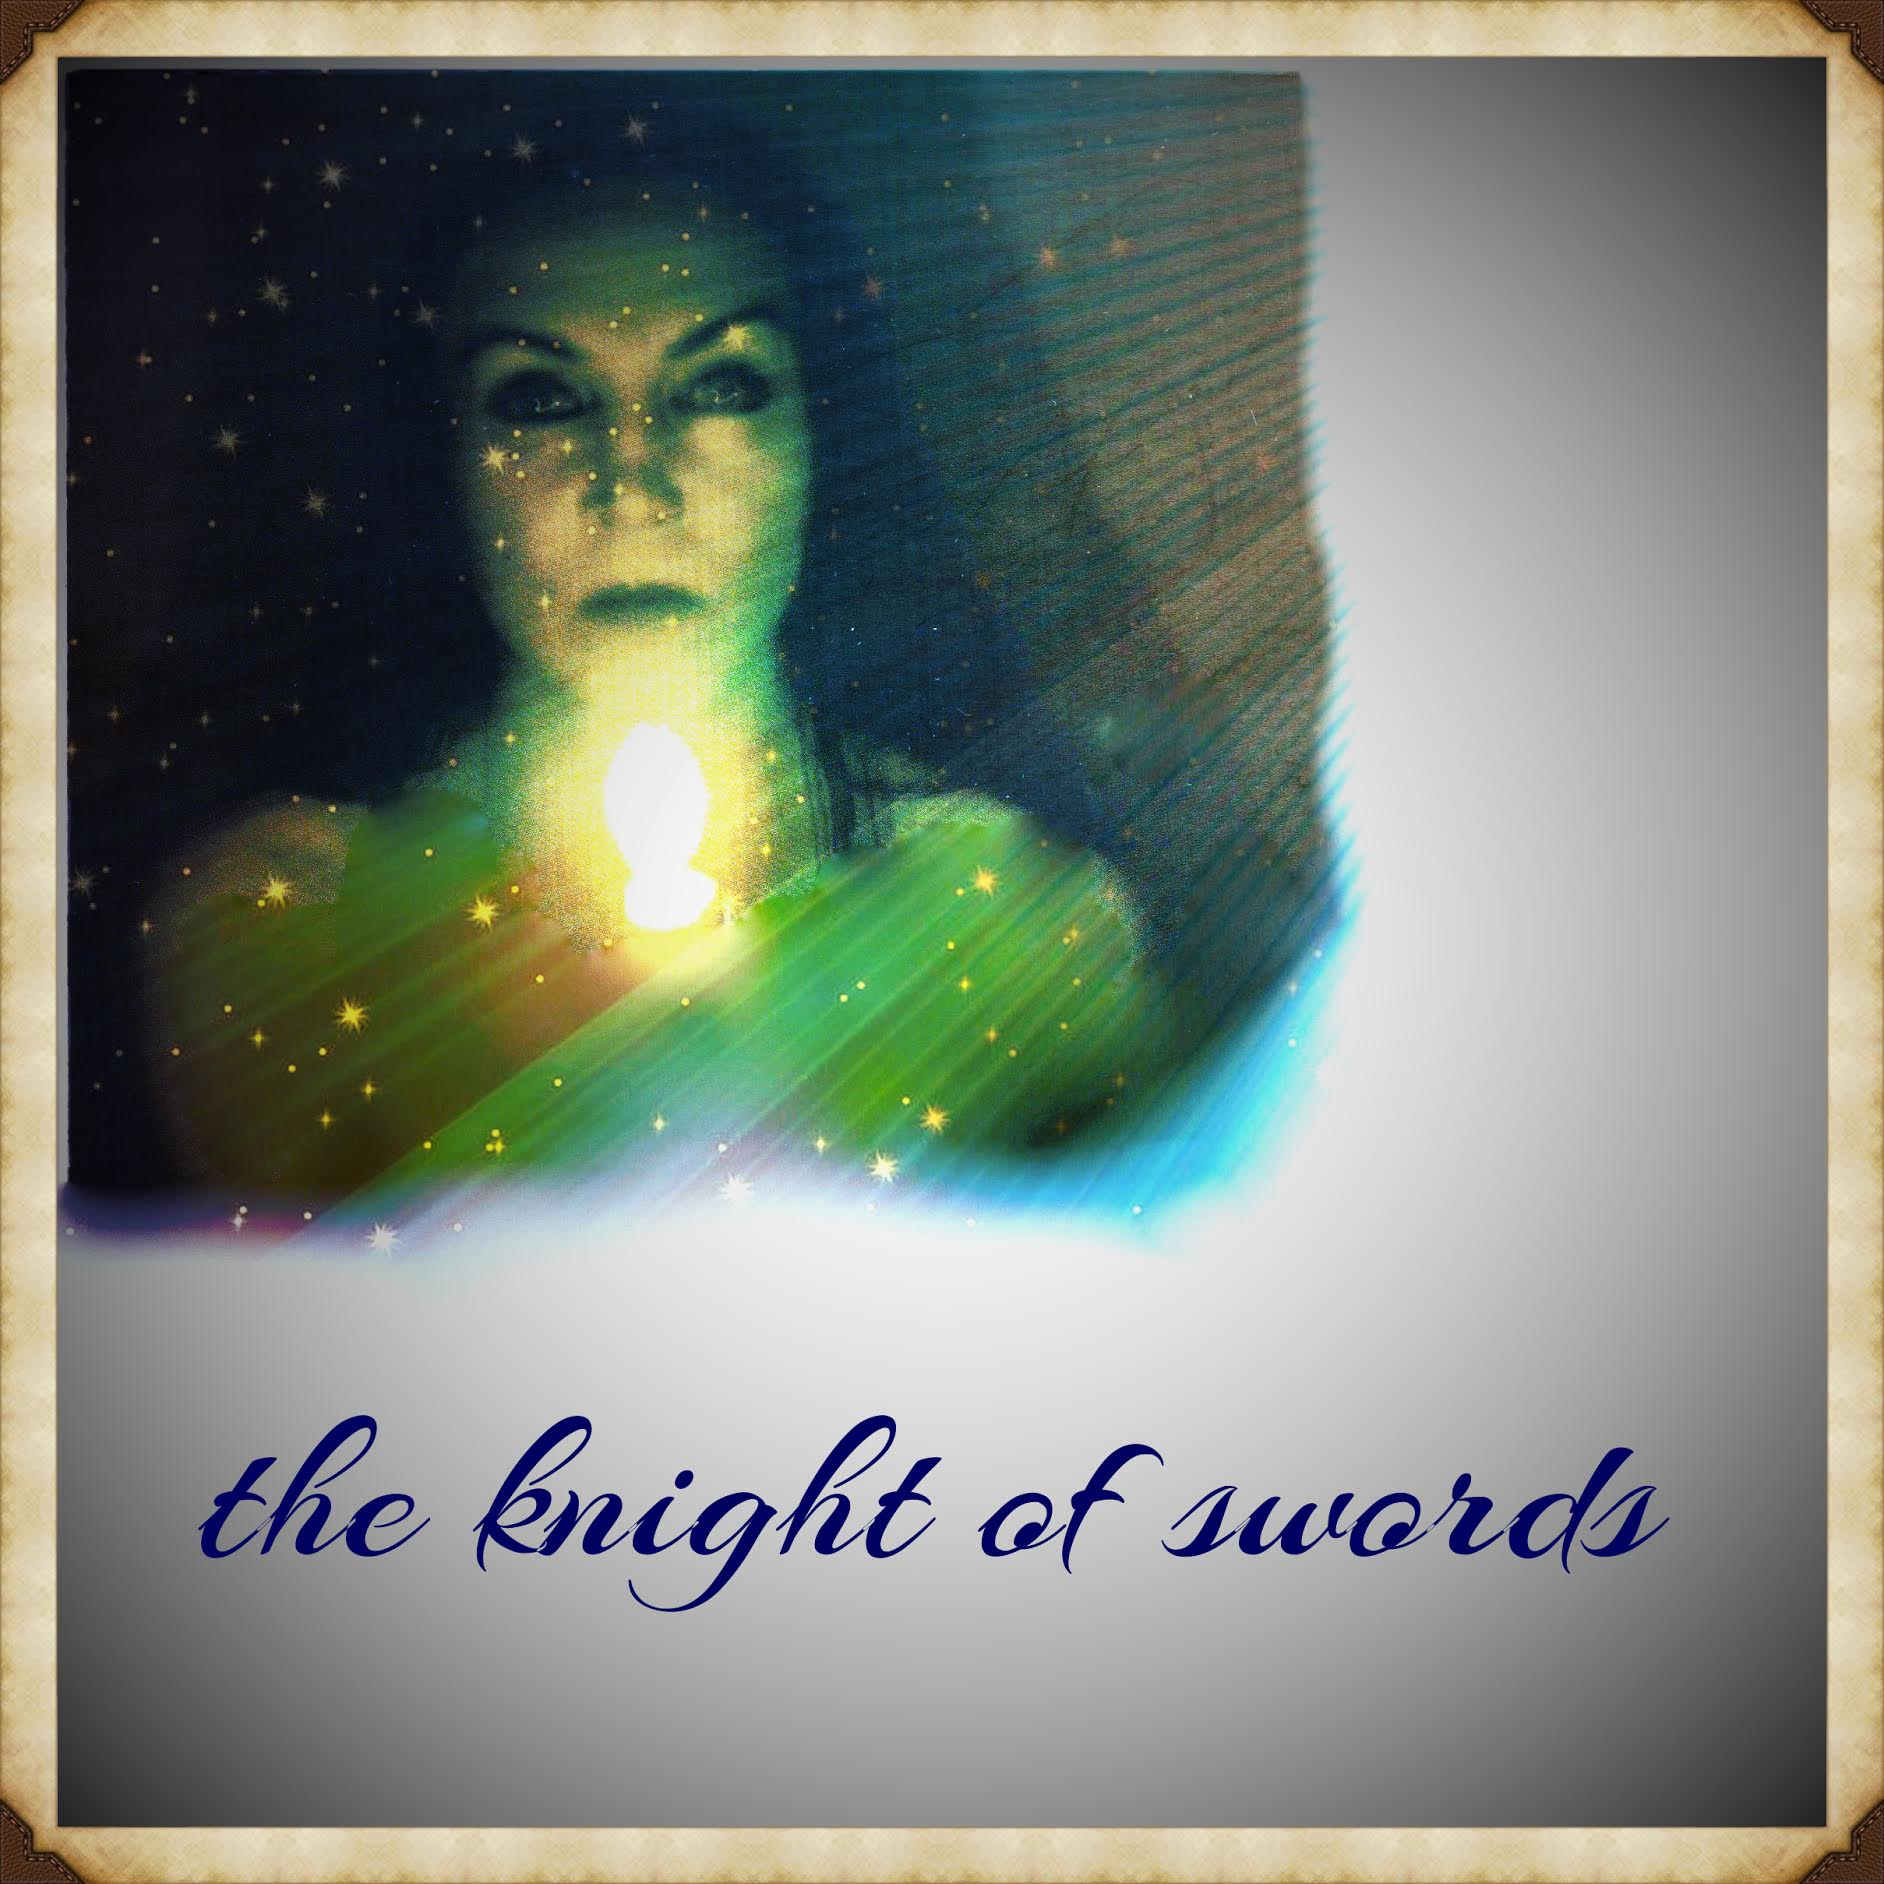 'The Knight Of Swords' 320Kbps mp3 download - The Living Jarboe